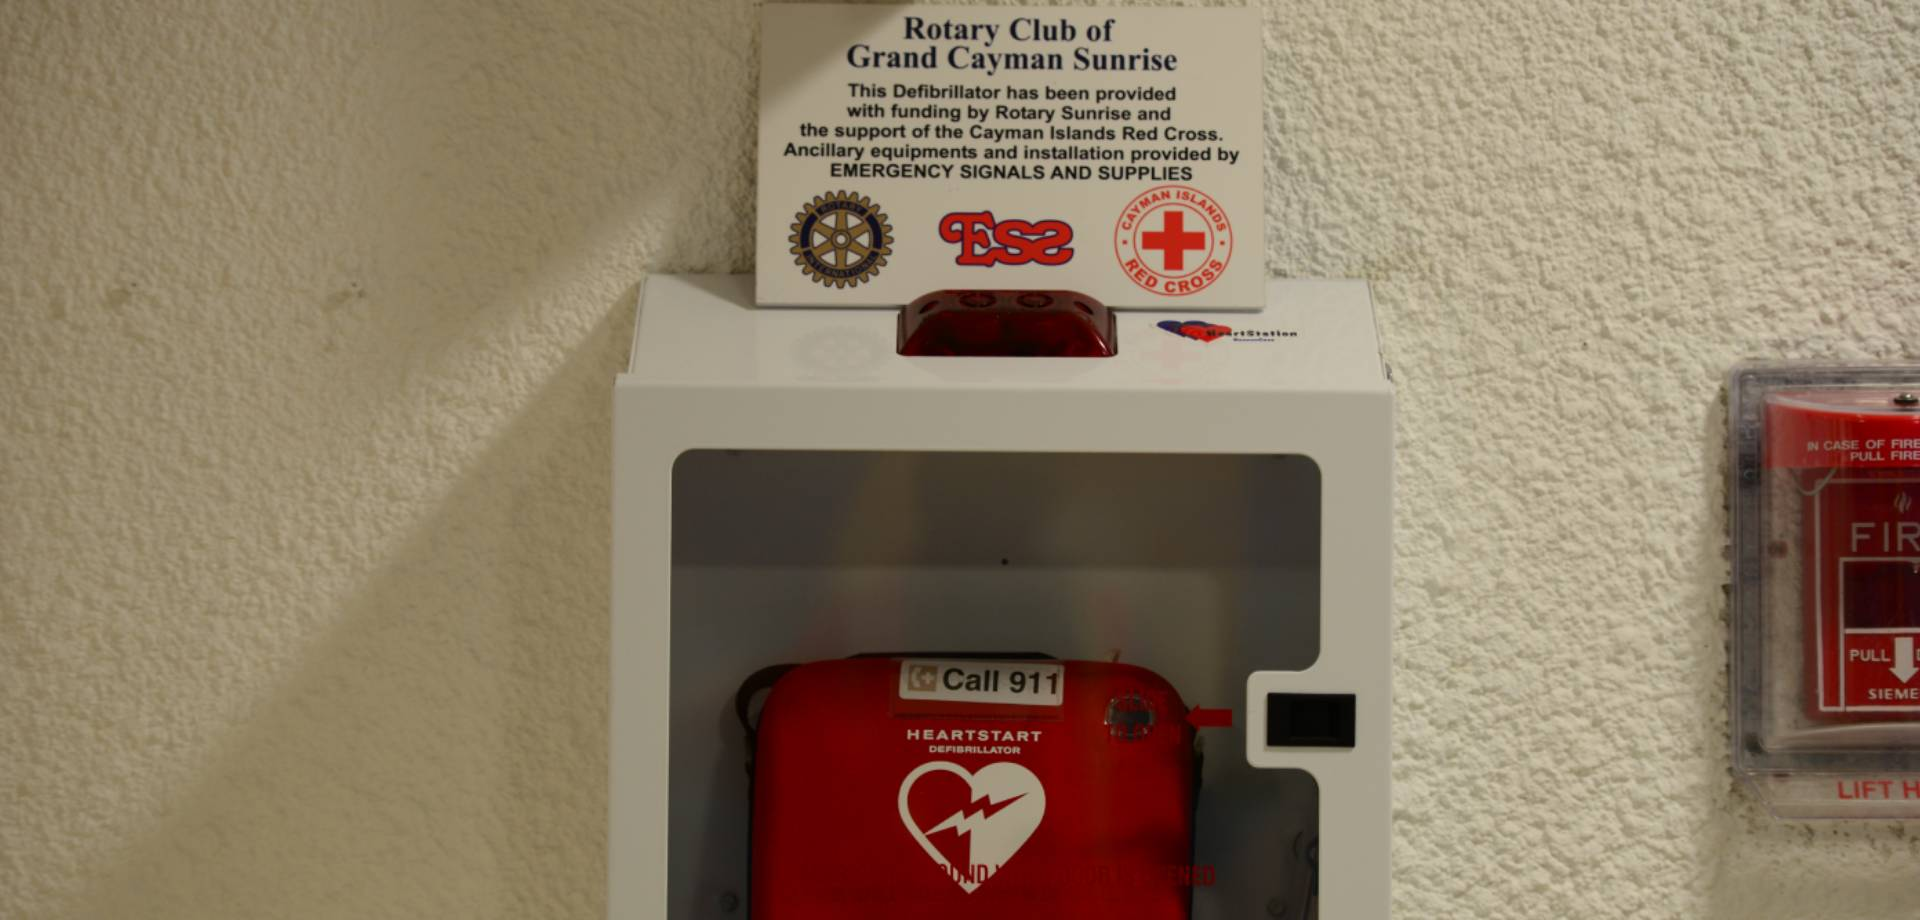 First Aid and Location of Defibrillators